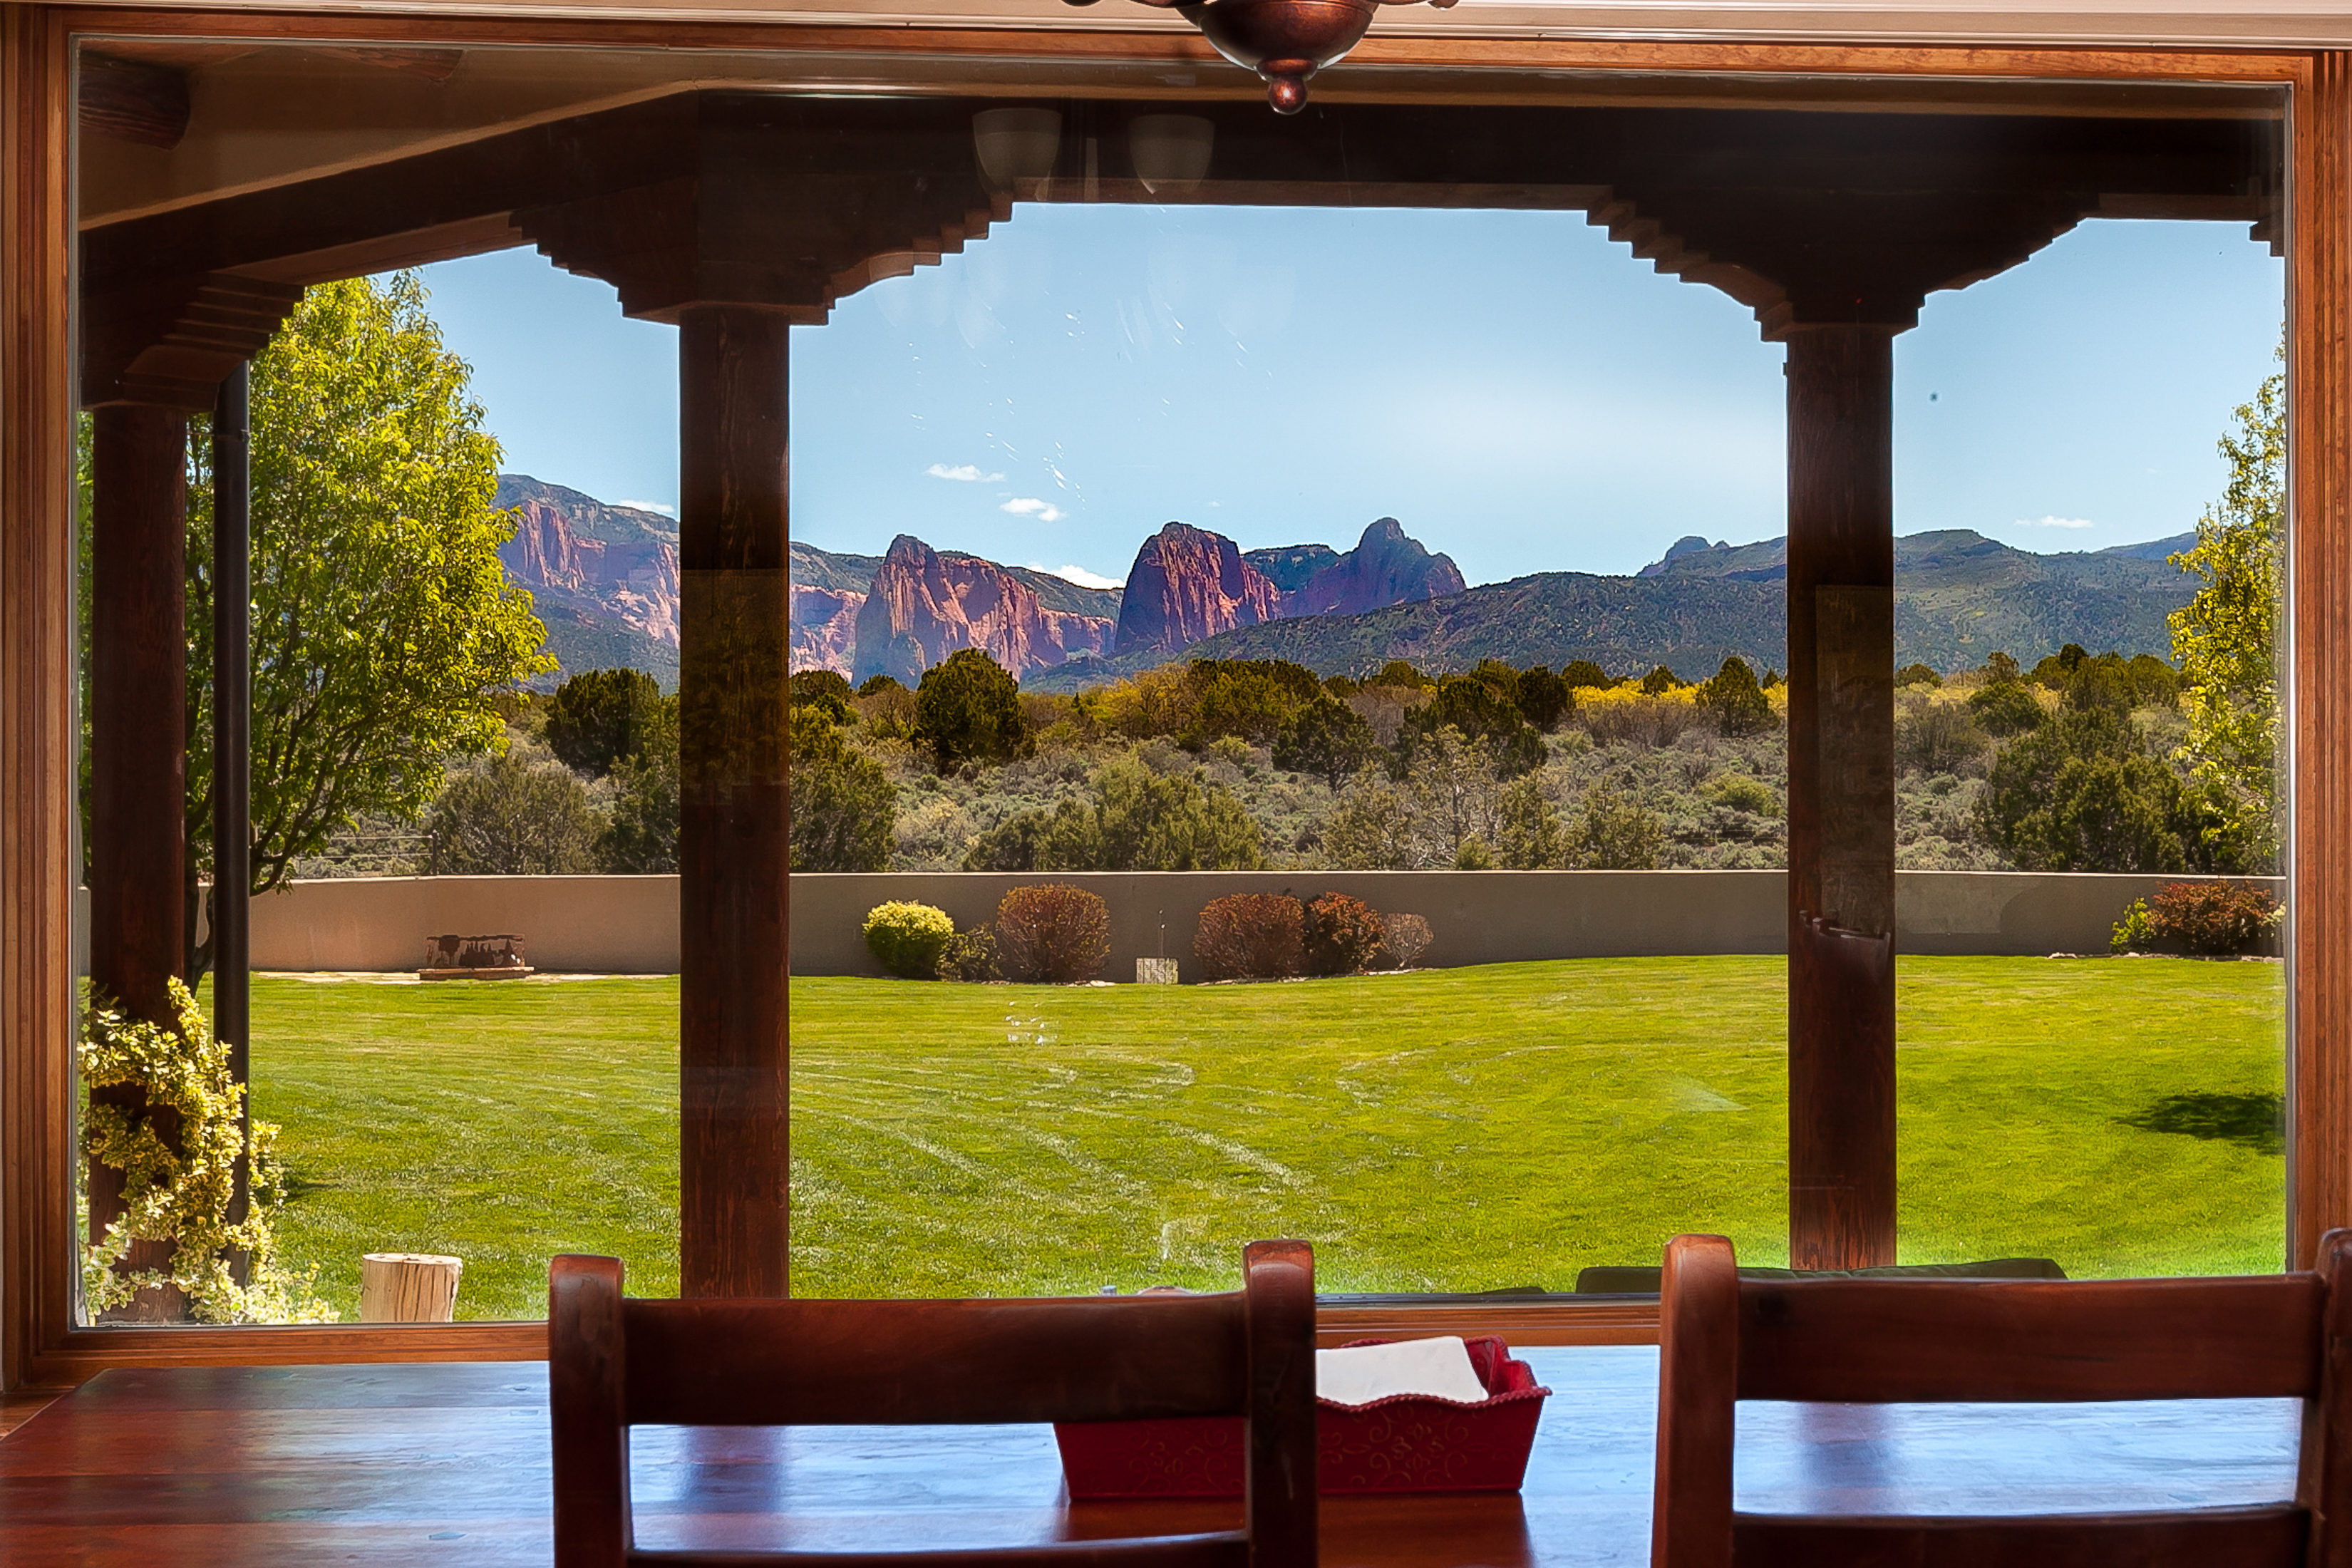 独户住宅 为 销售 在 Equestrian Paradise with Zion's Kolob Canyon Views 755 South 1500 East New Harmony, 犹他州, 84757 美国